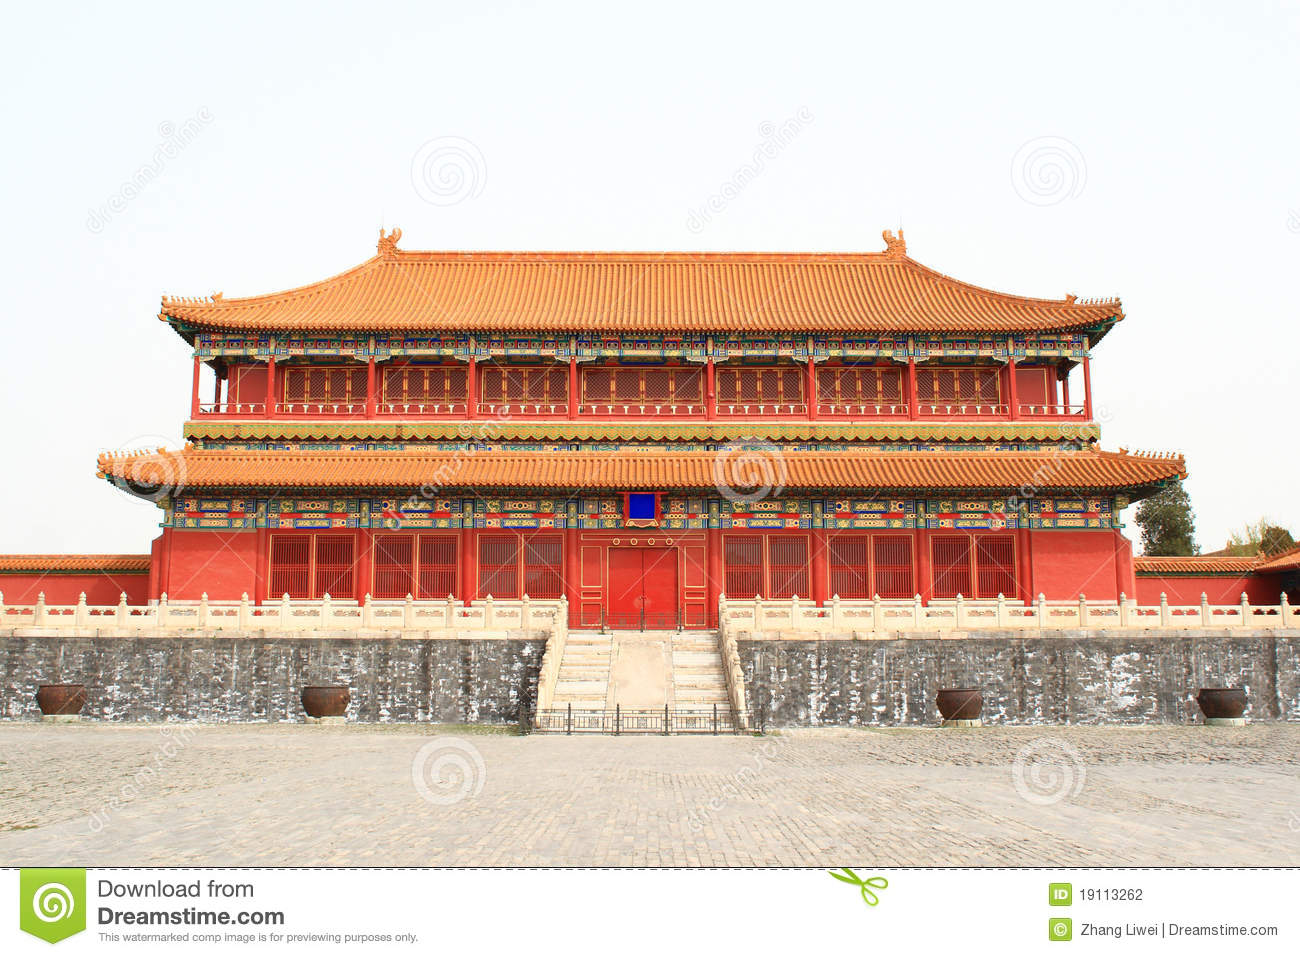 chinese traditional palace in the Forbidden City,Beijing,China.